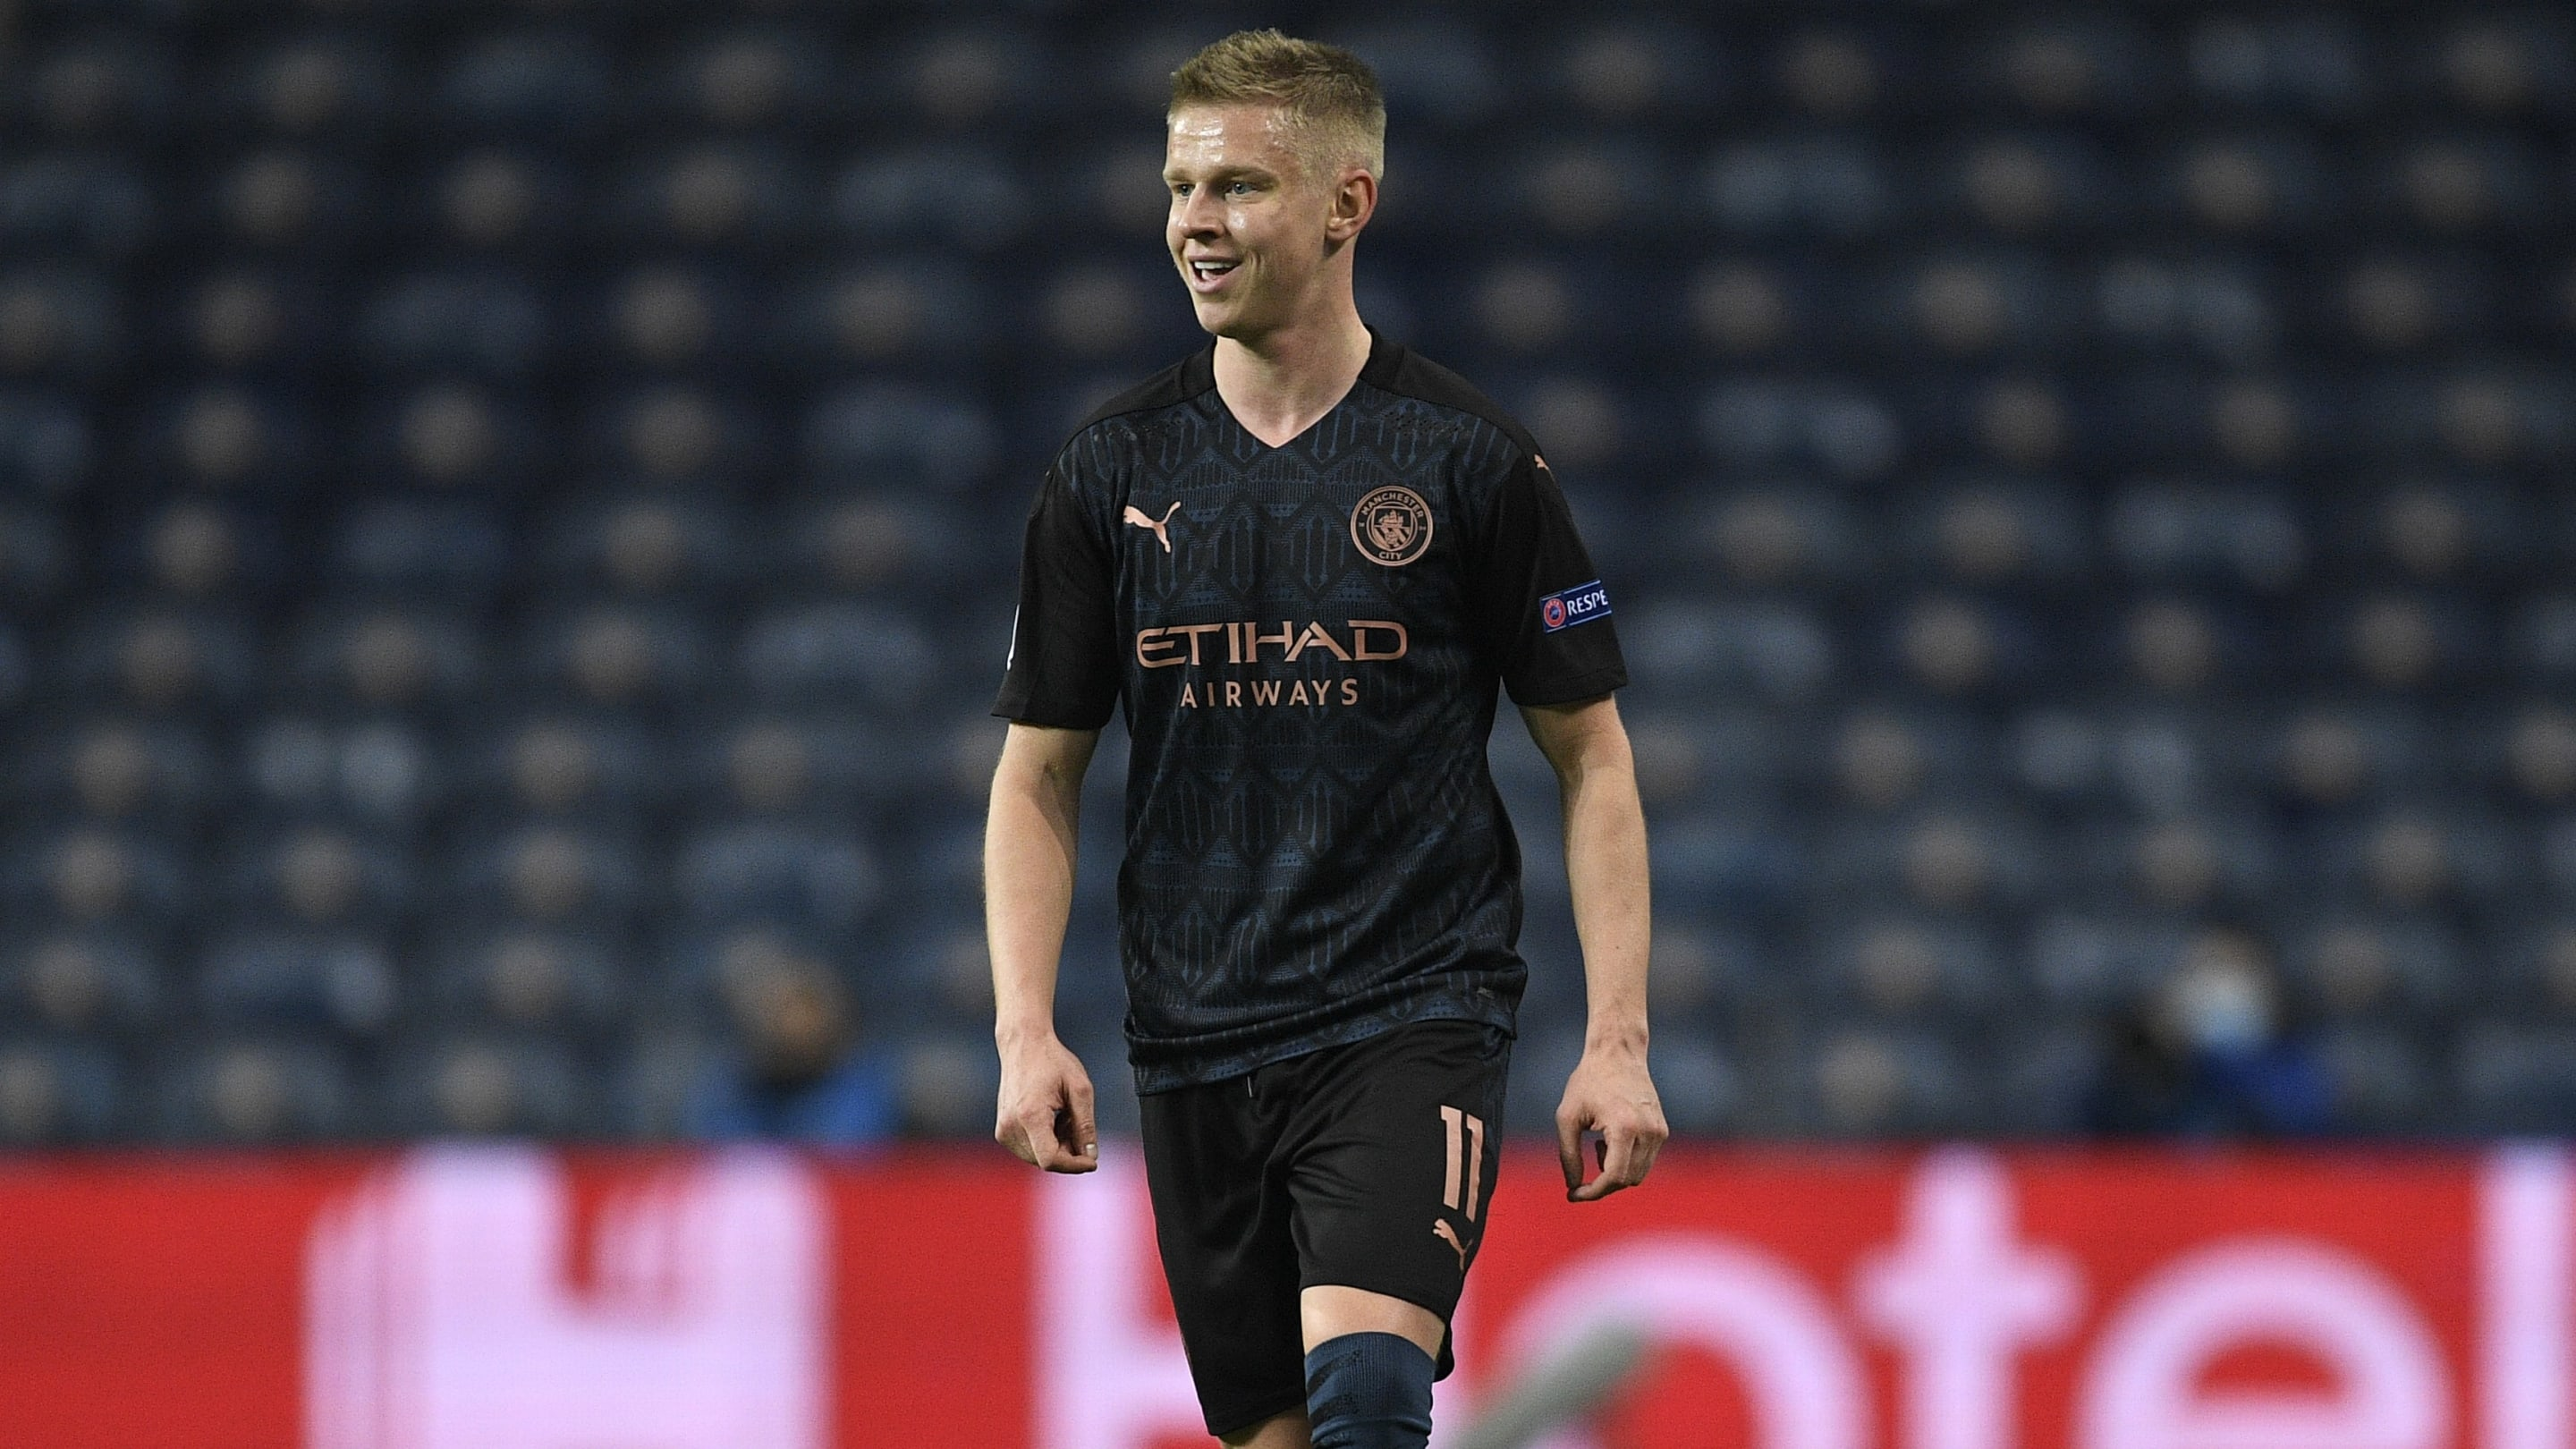 Oleksandr Zinchenko: The Contenders to Sign Him & Where He Might End Up